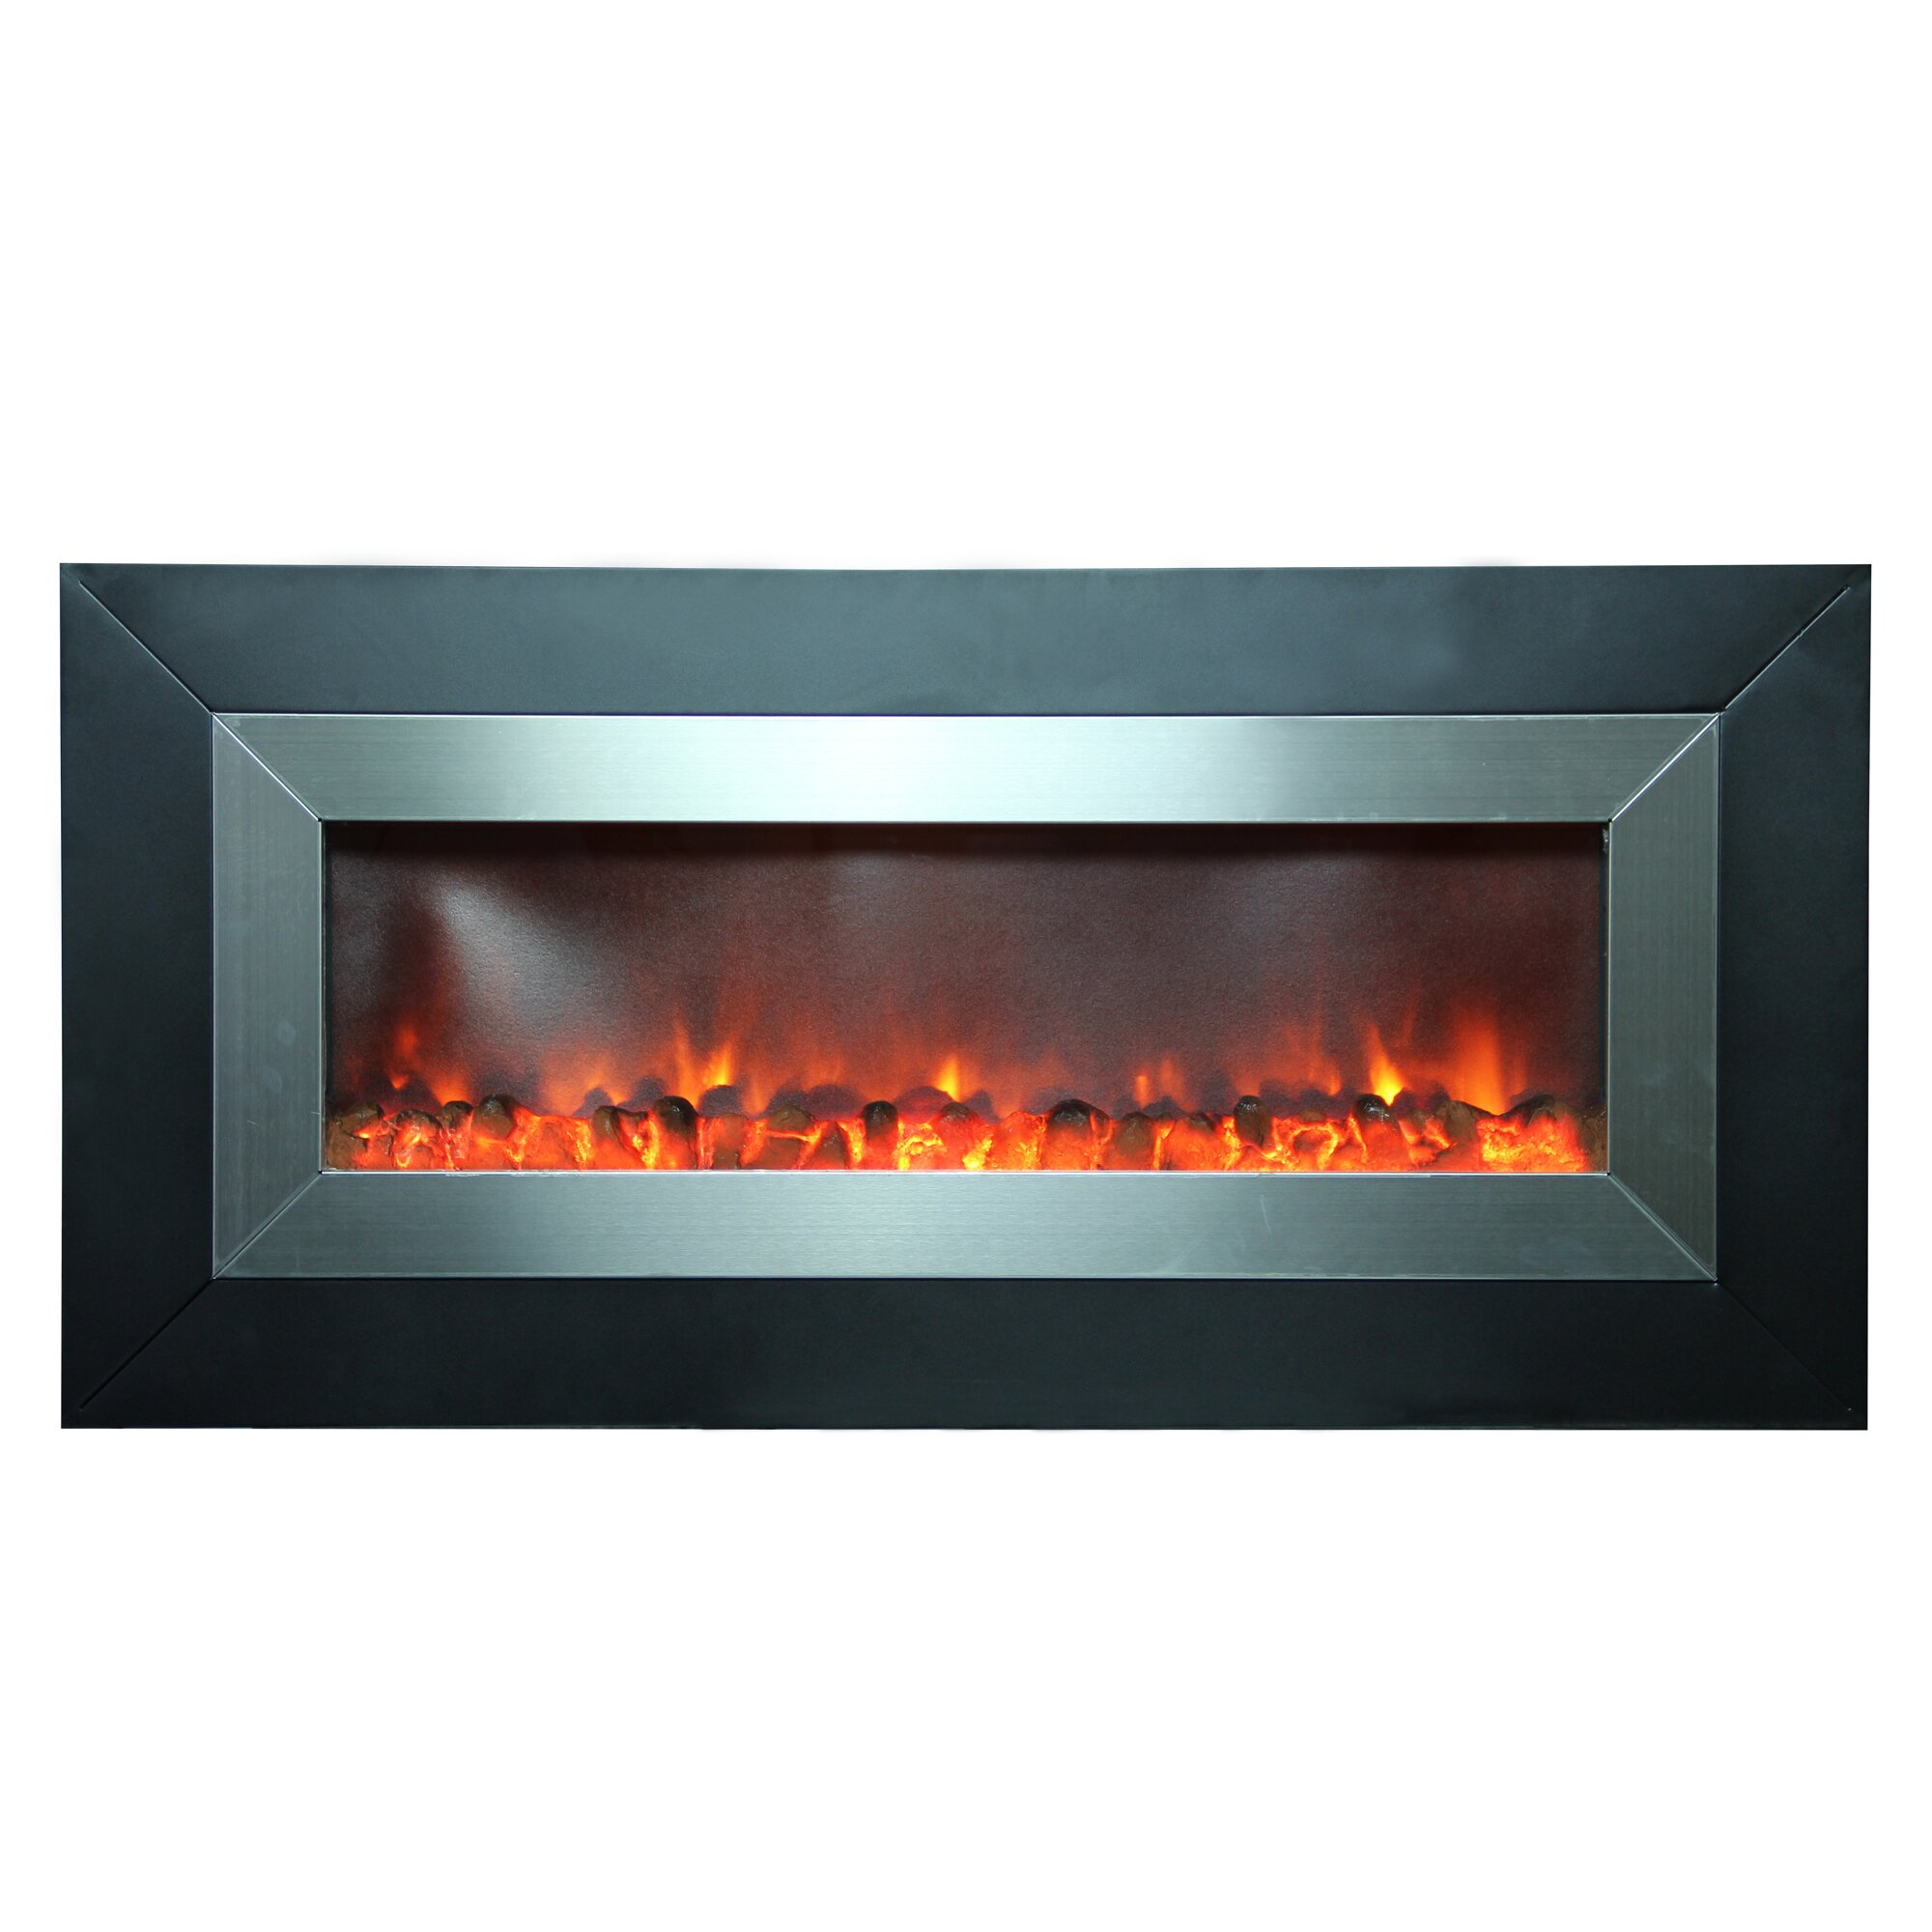 Y Decor Stunner Wall Mount Electric Fireplace Reviews